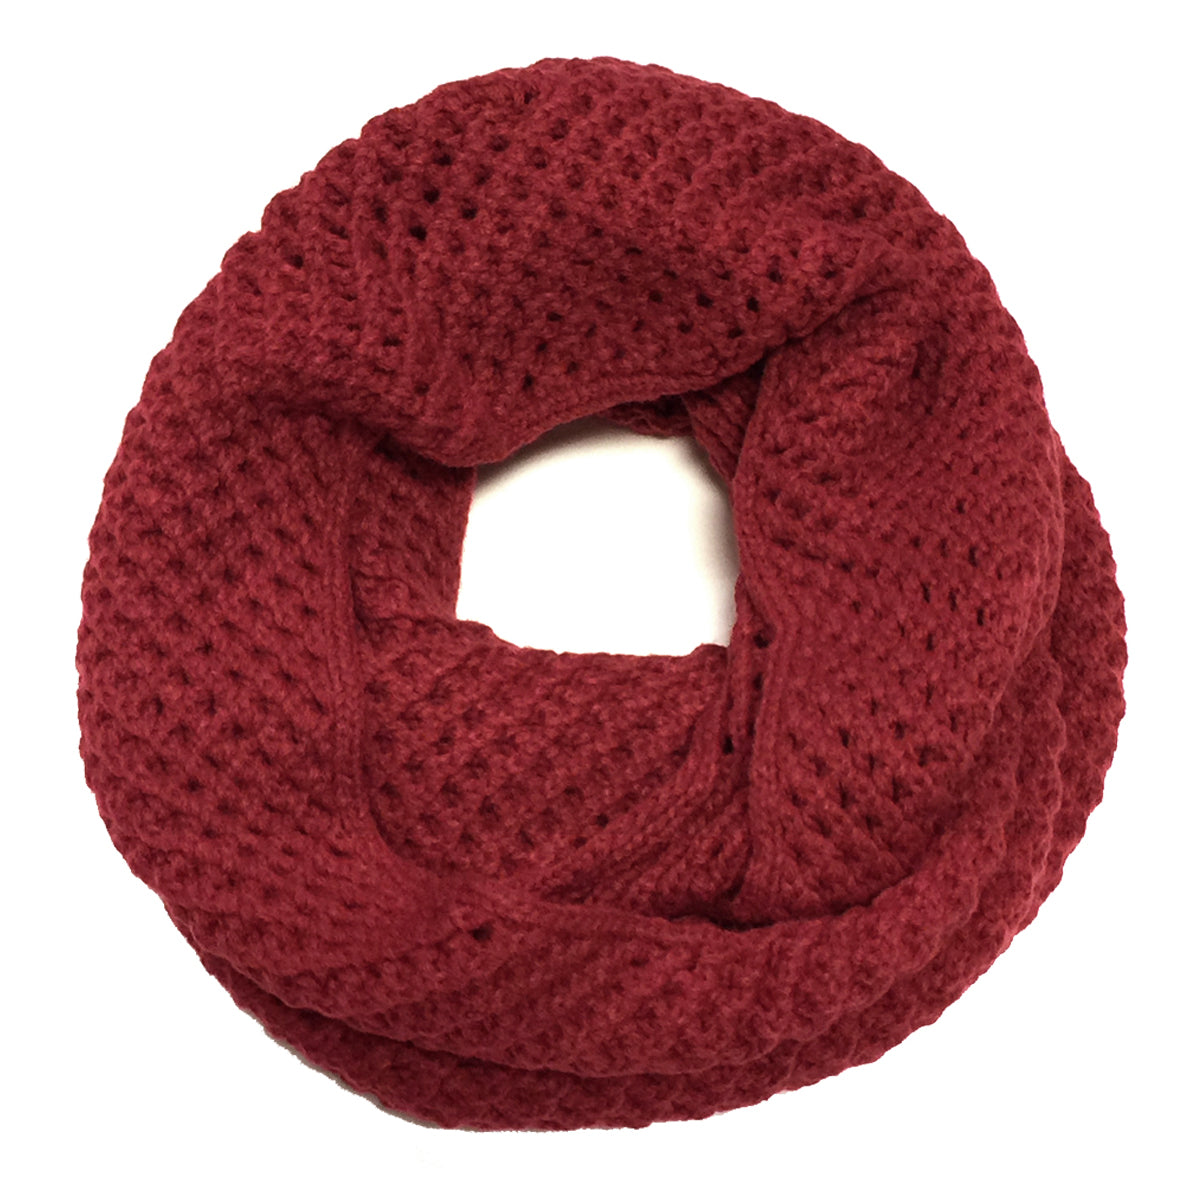 Wrapables Soft Knit Warm Infinity Scarf